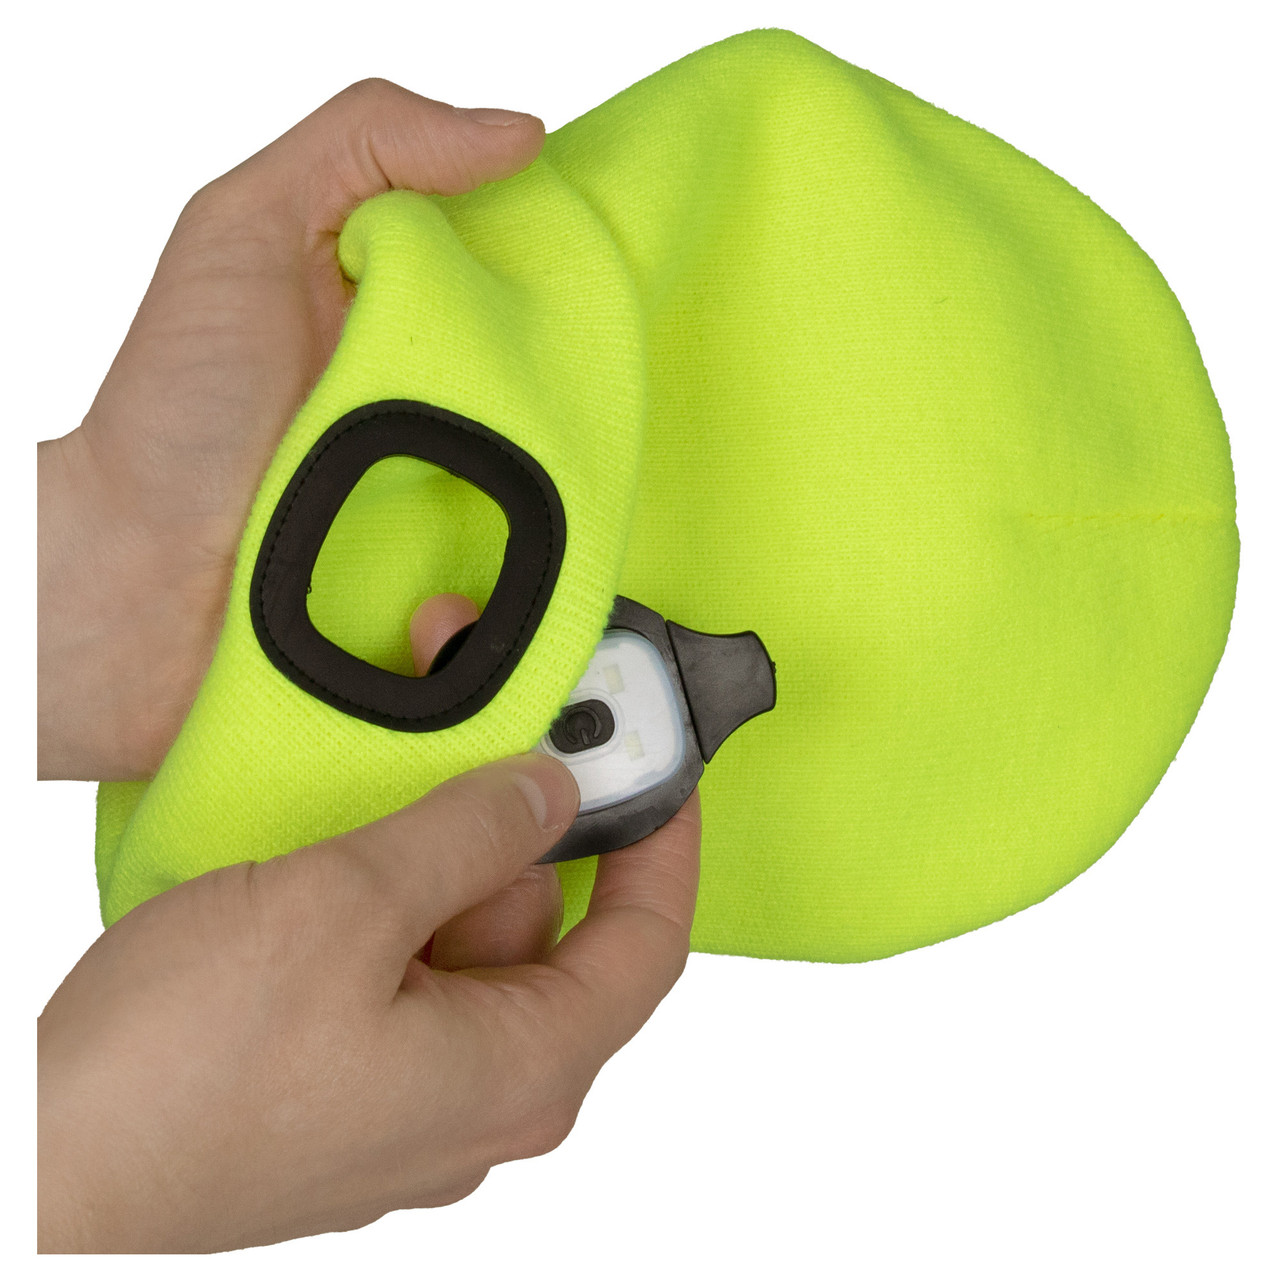 Knit Cap with Rechargeable LED Light